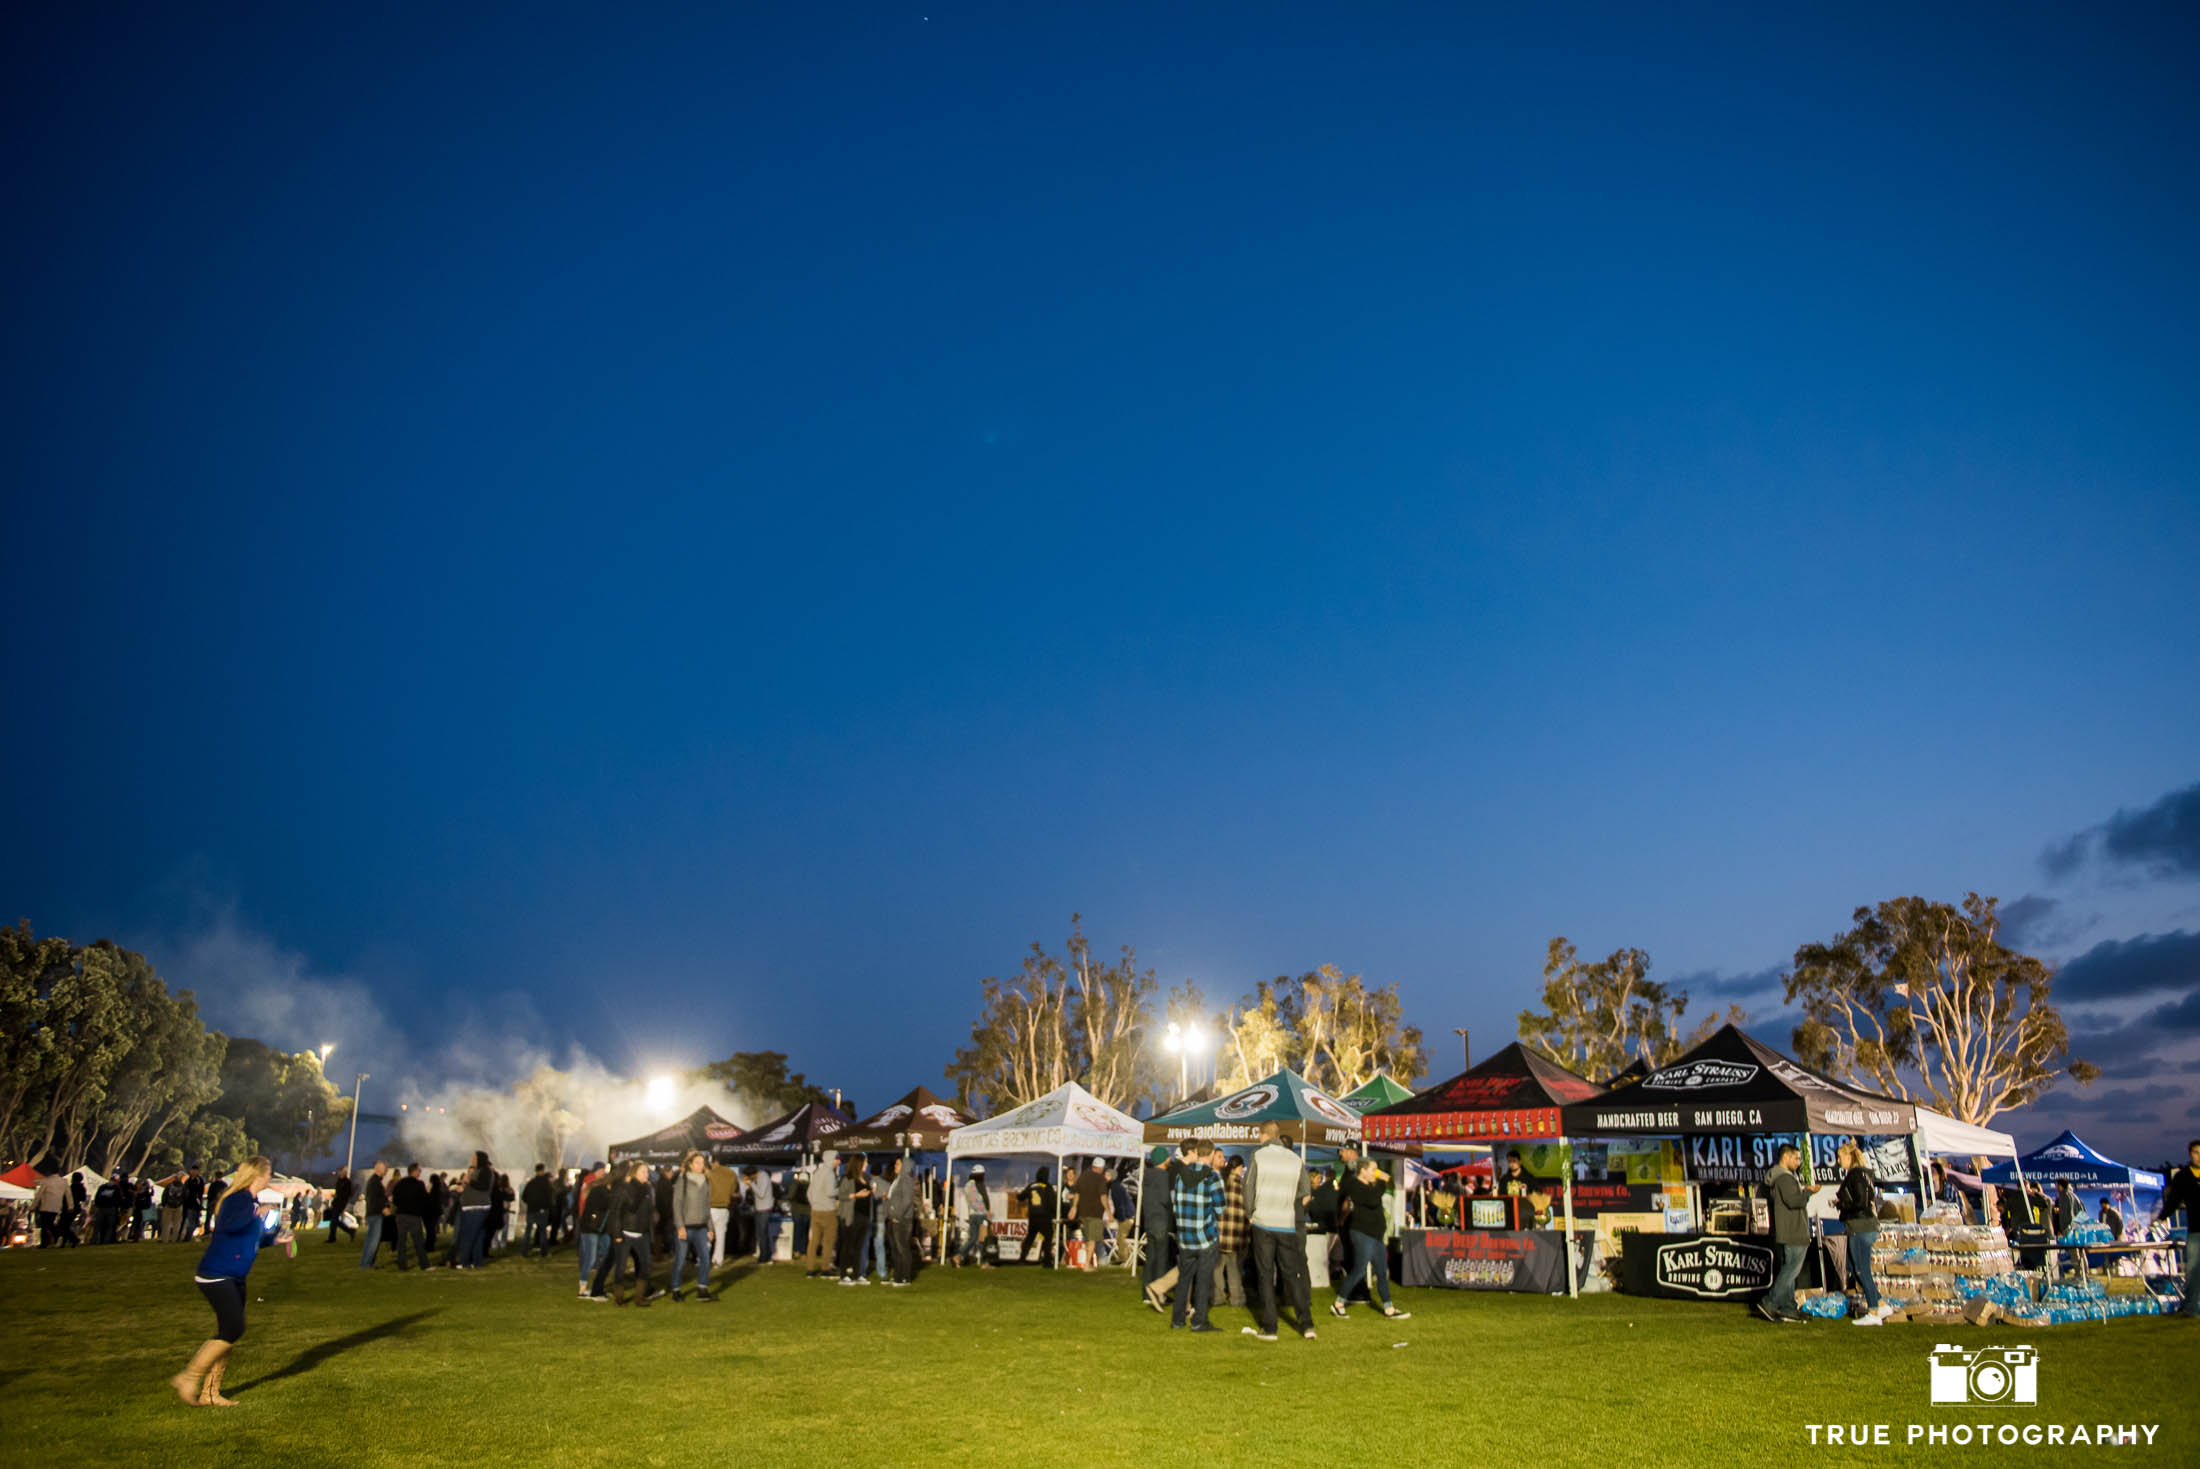 Night photo of Best Coast Beer Festival